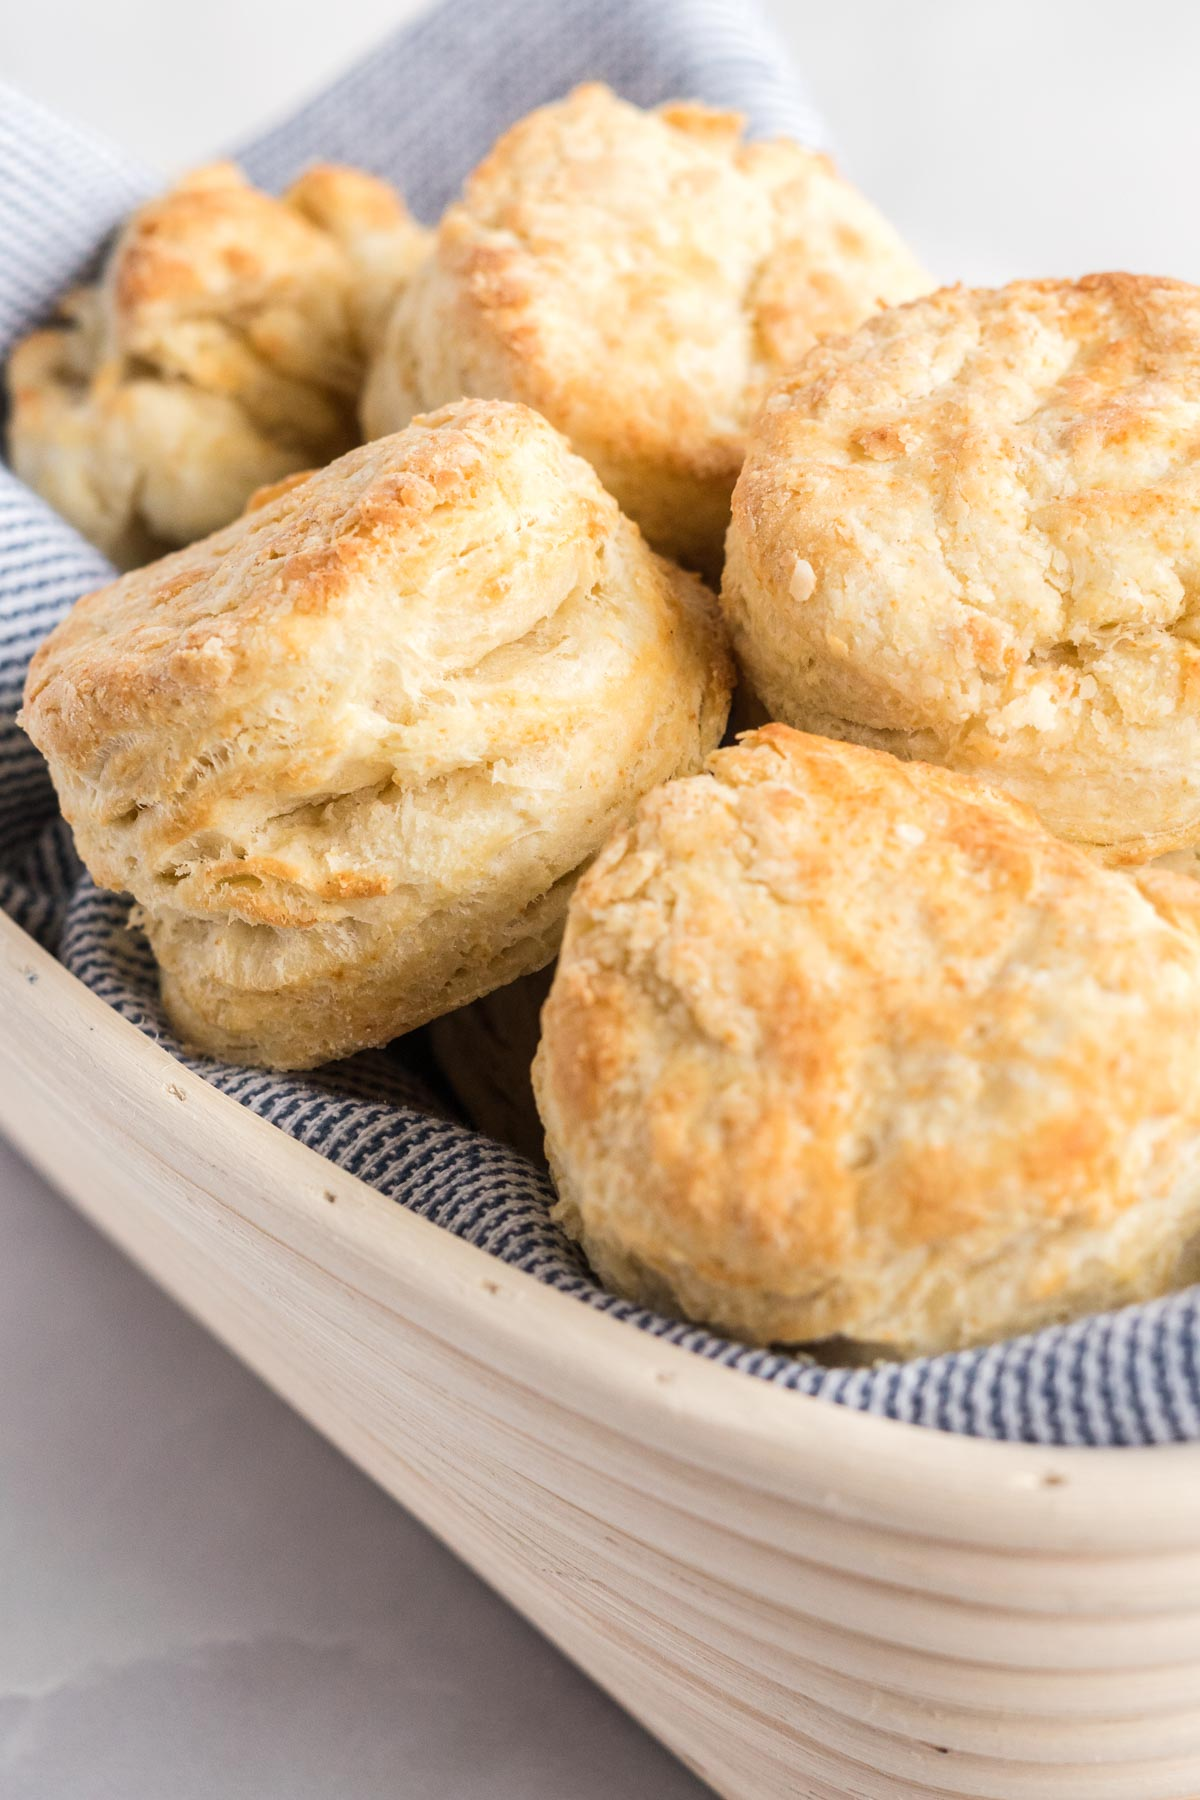 Biscuits in a basket lined with a blue towel.